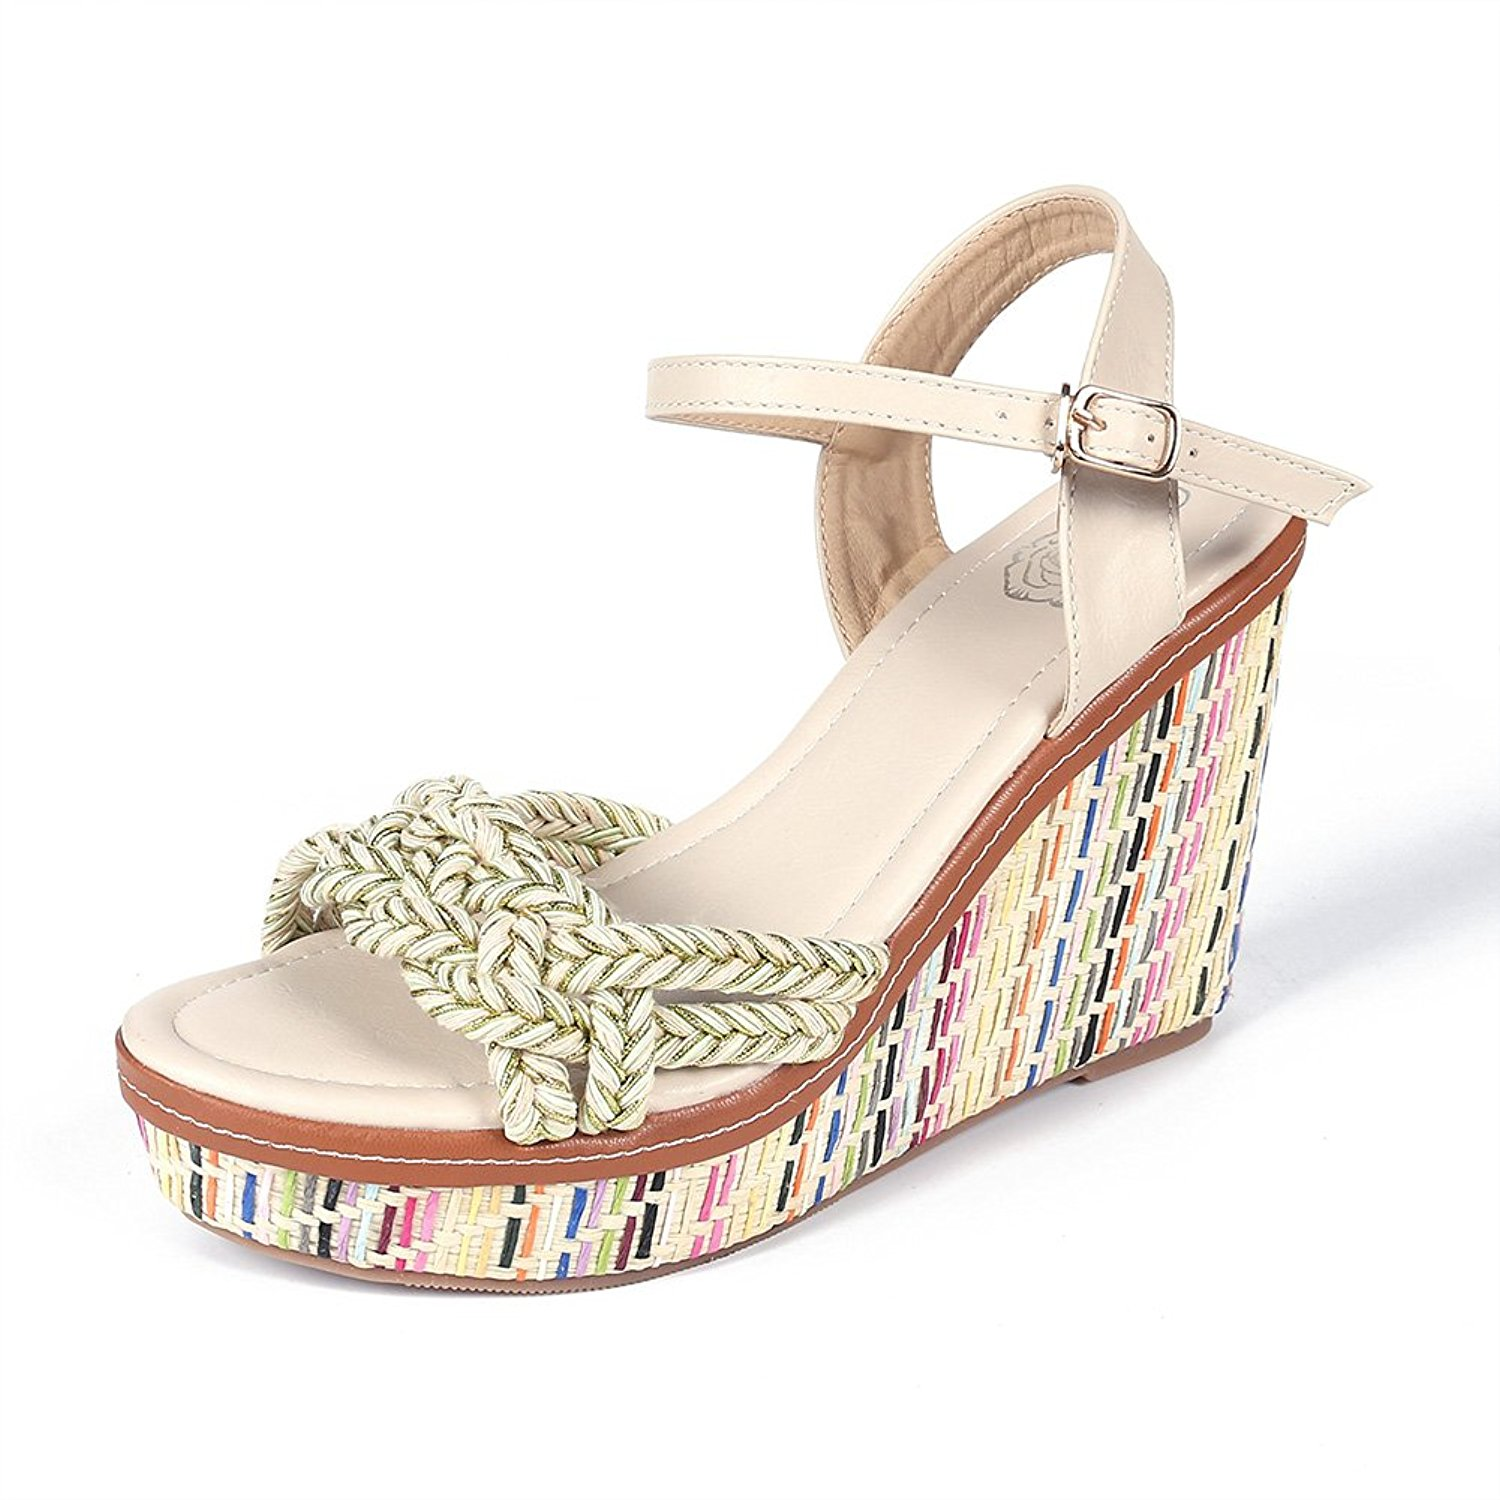 911eb68e018a8 Get Quotations · Shevalues Women Summer Bohemian Wedge Sandals High Heel  Platform Wedge Rope Braided Strap Espadrille Wedge Sandals